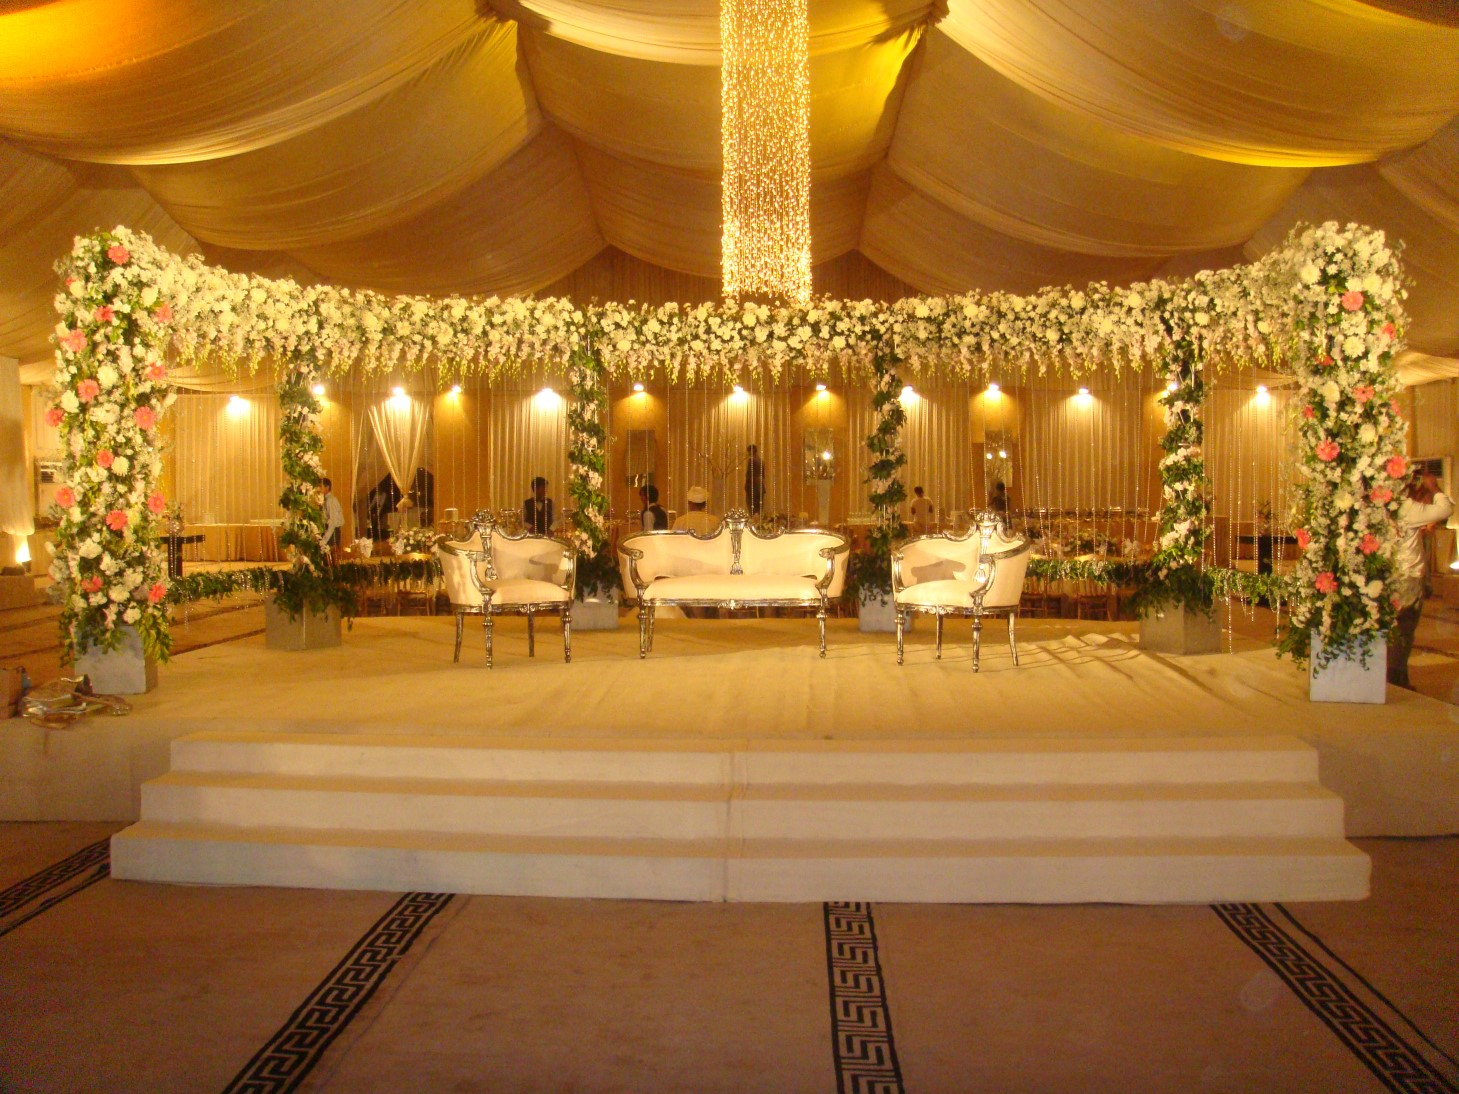 About marriage marriage decoration photos 2013 marriage for Design and deco